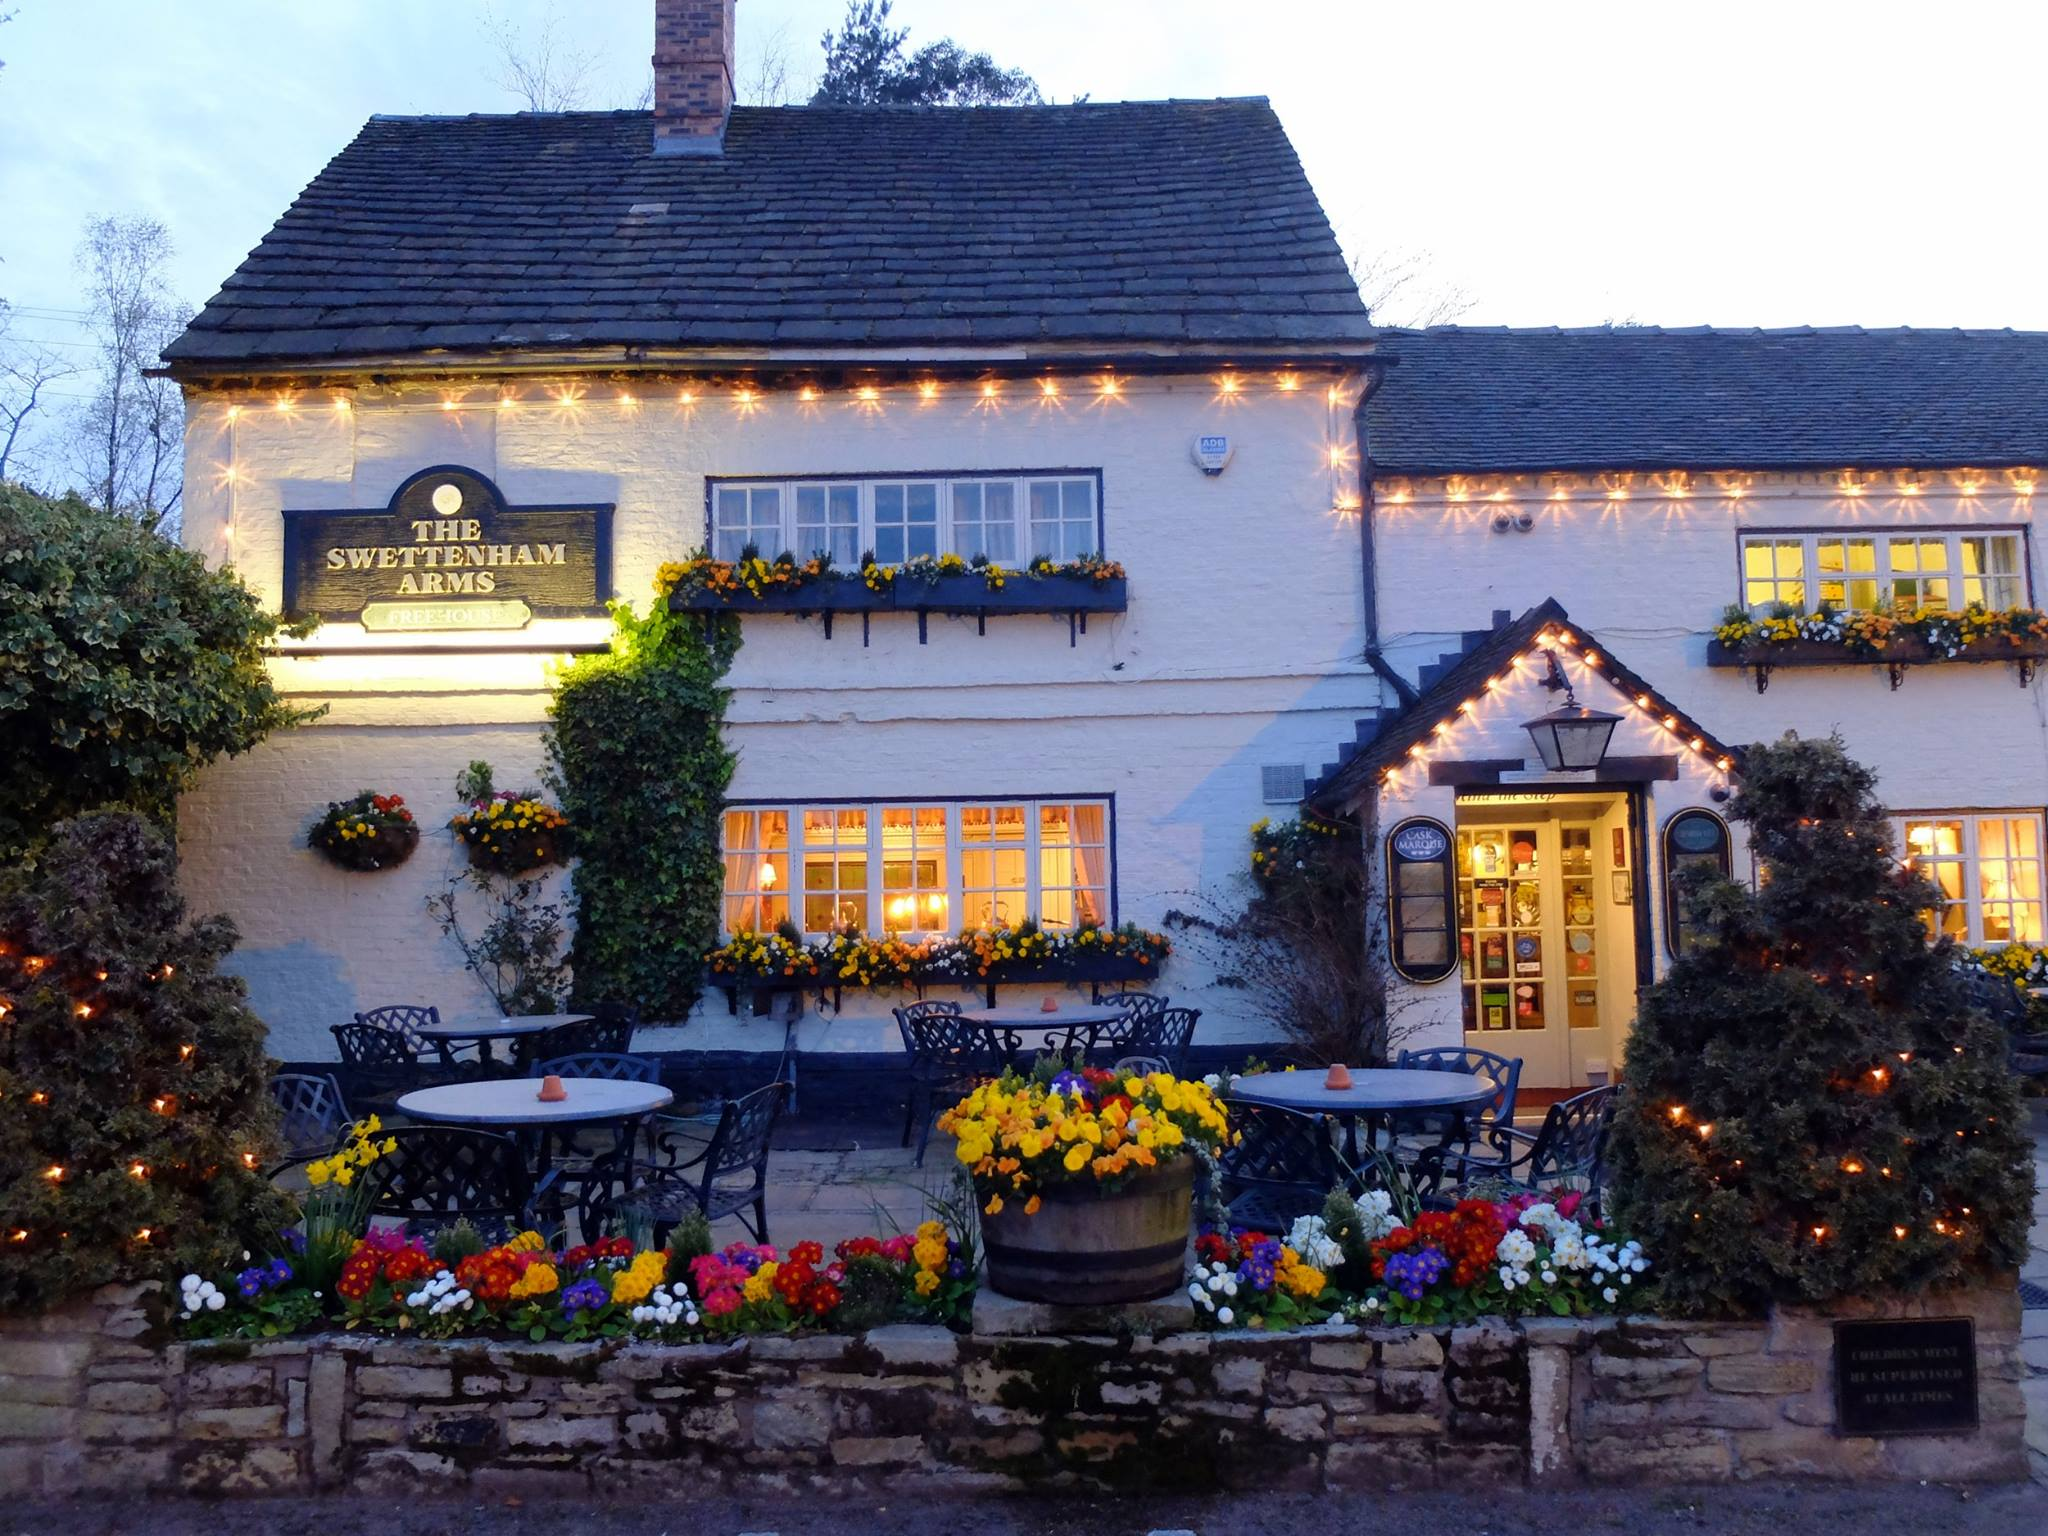 Swettenham Arms for hire